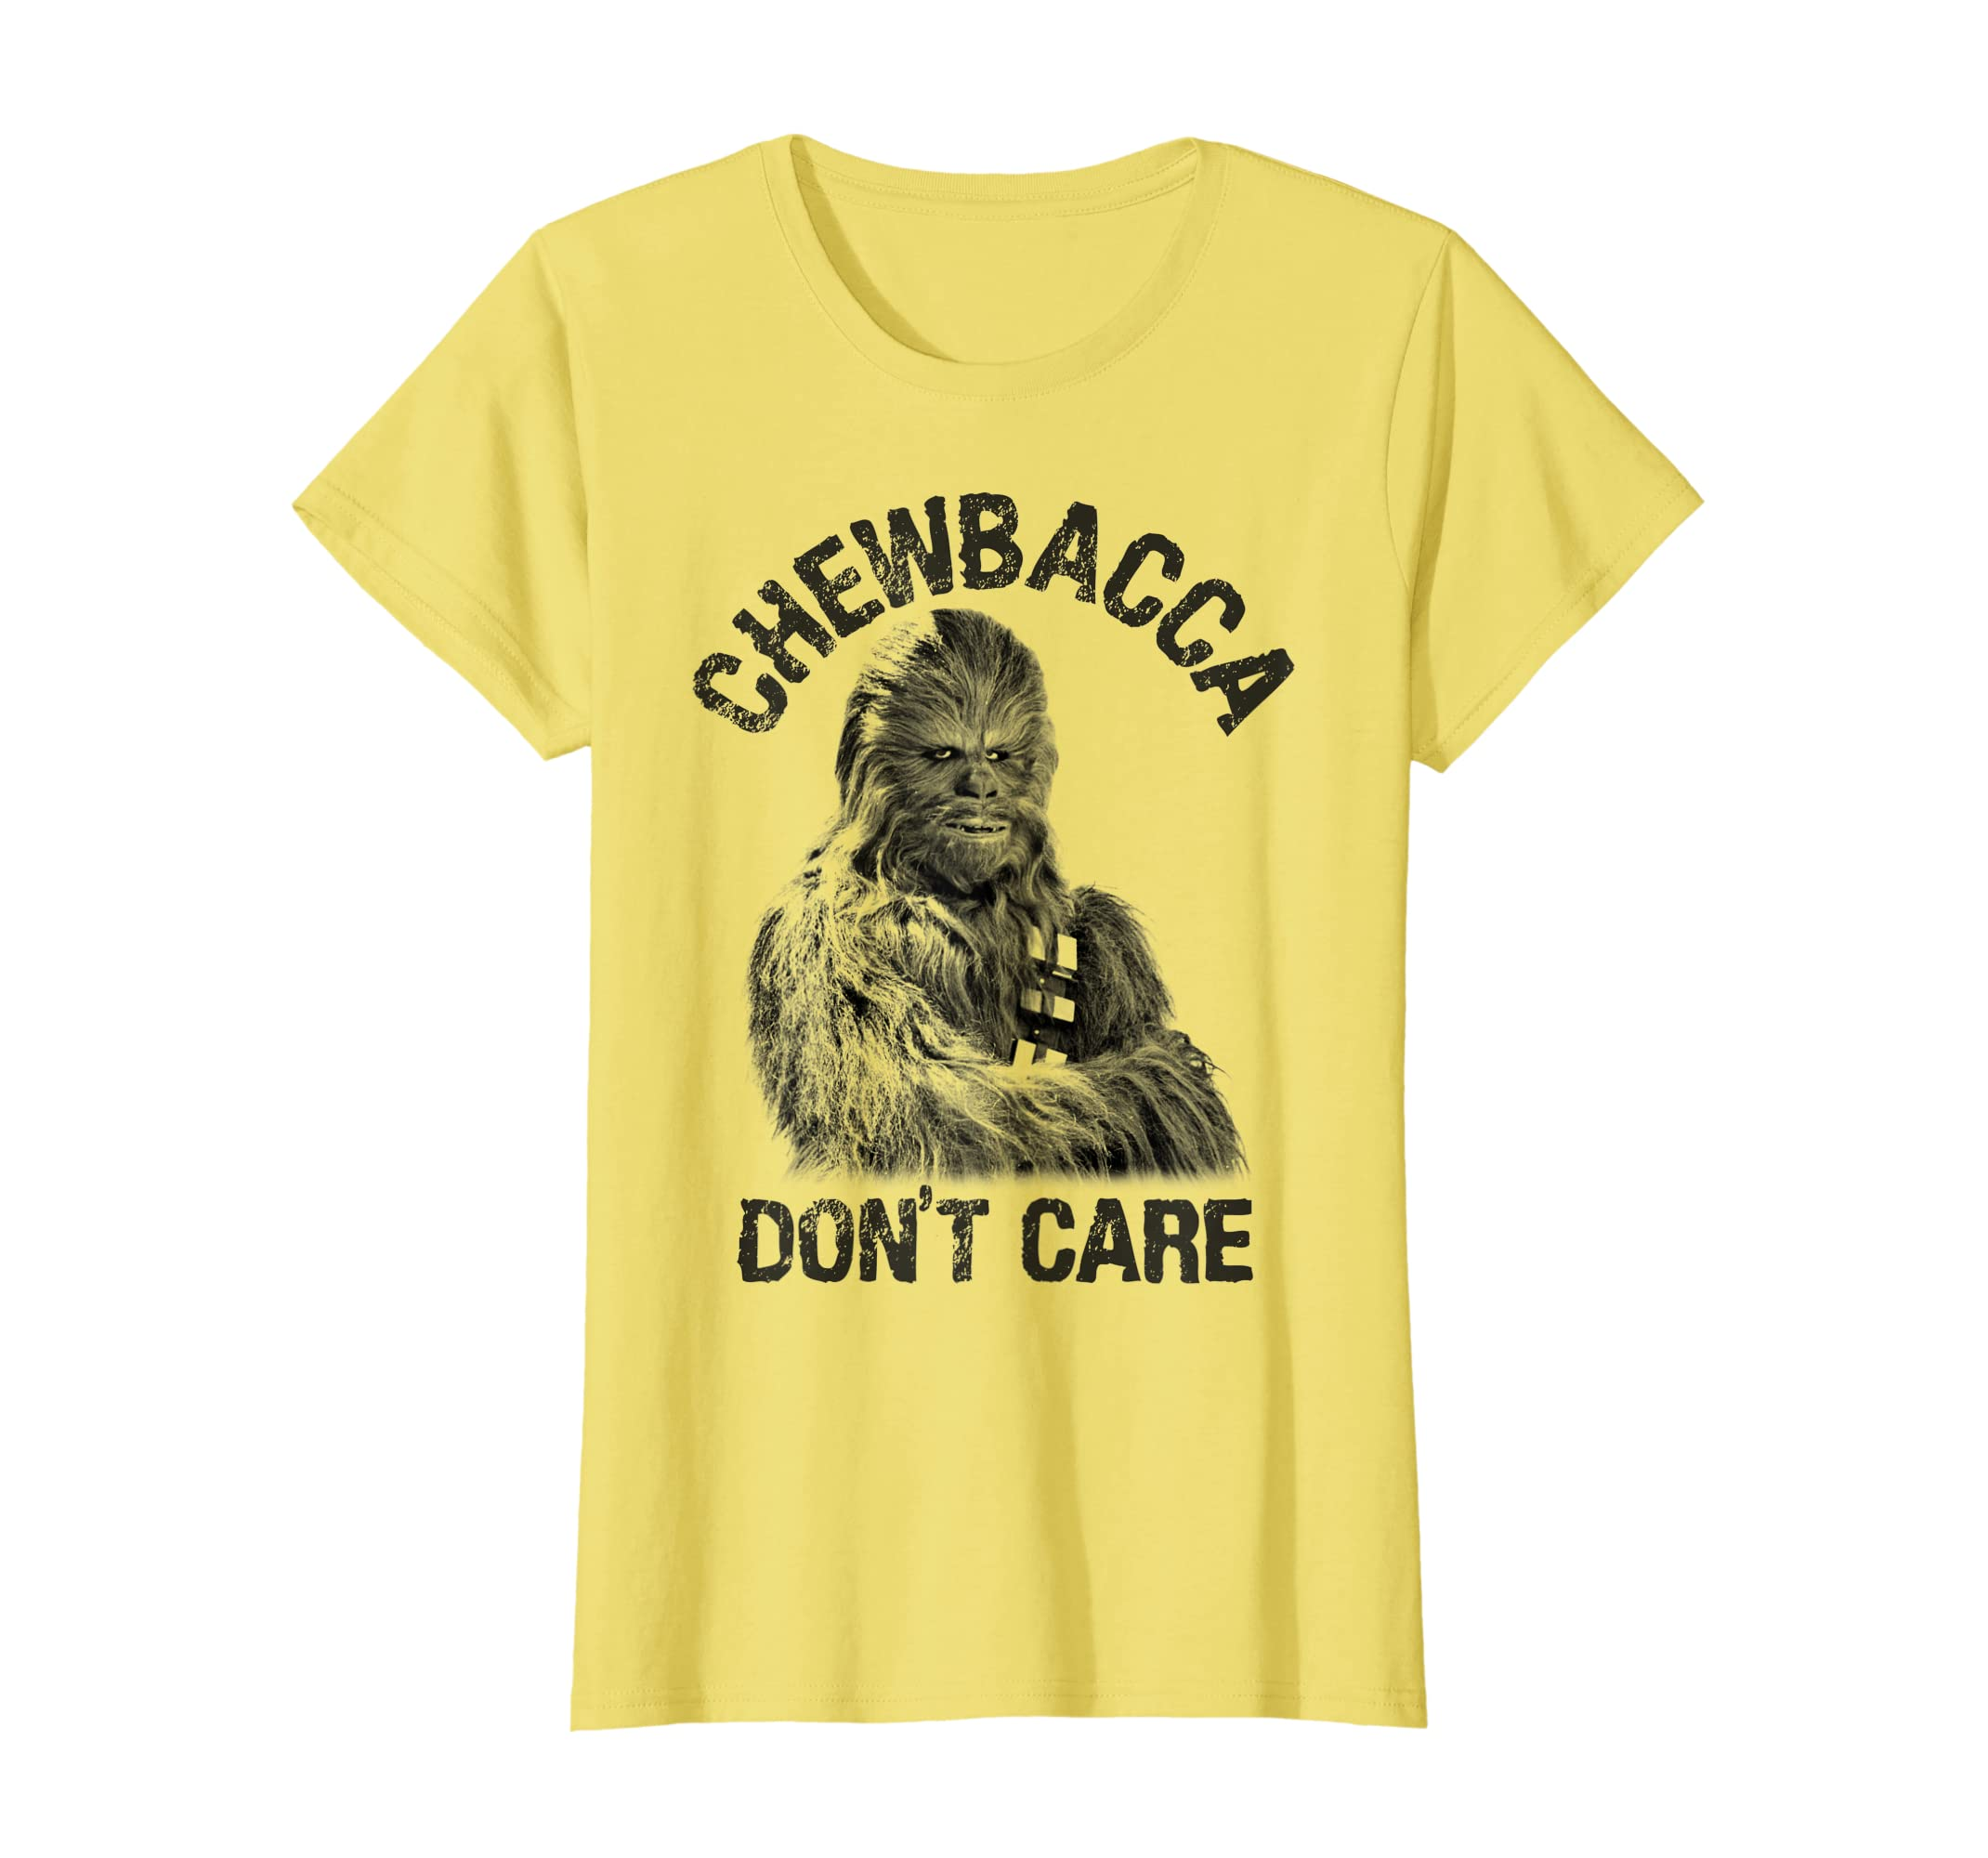 3ed96efa8 Amazon.com: Star Wars Chewbacca Don't Care Graphic T-Shirt: Clothing